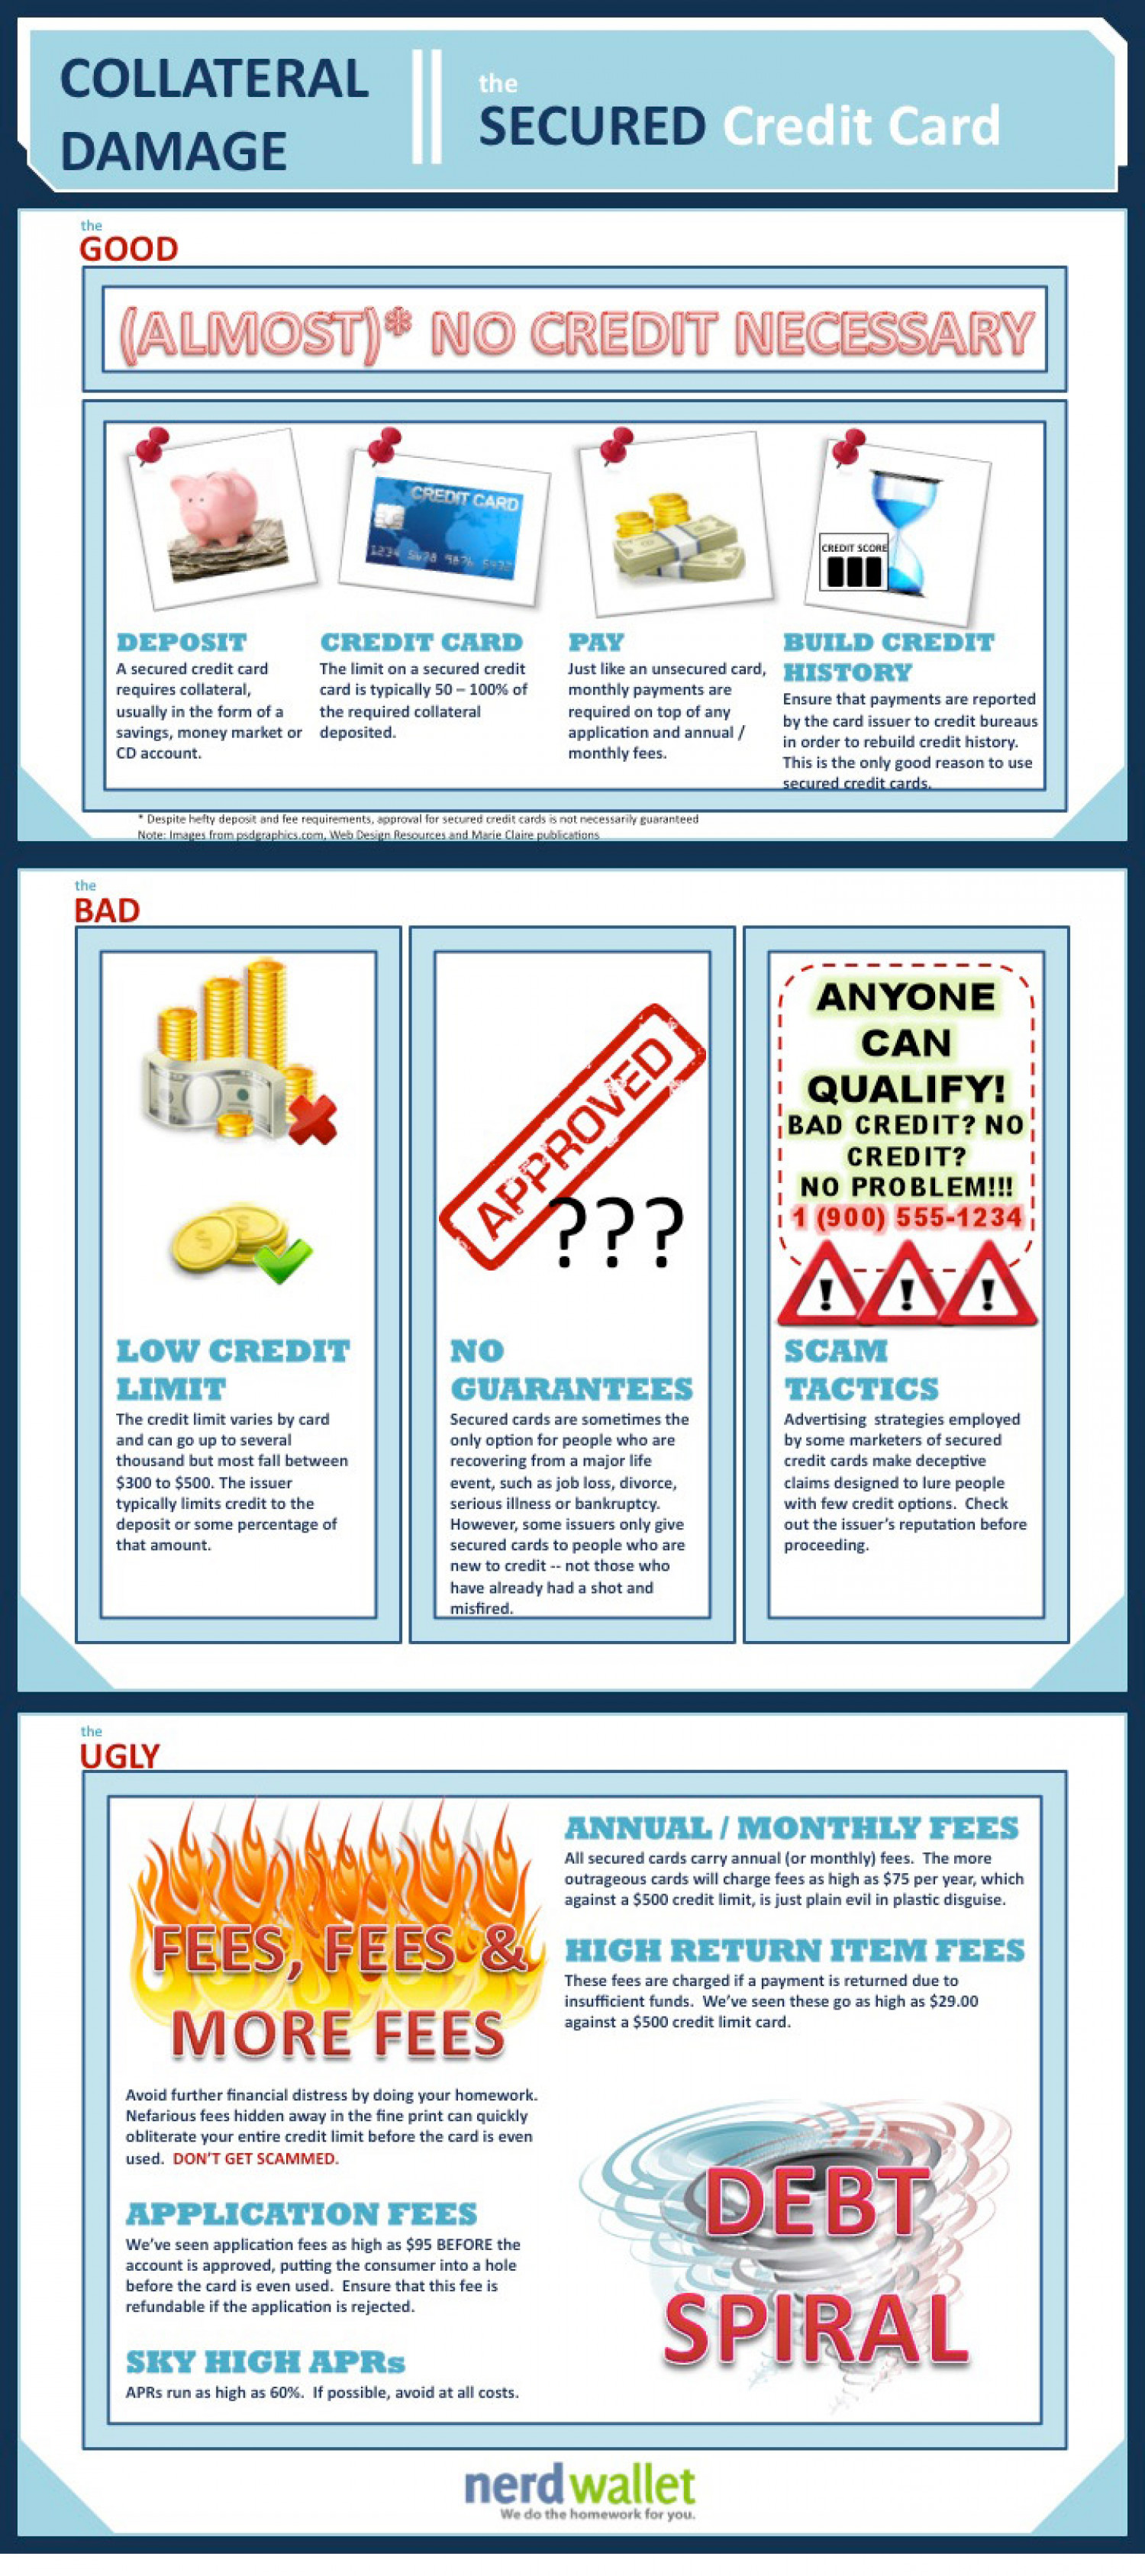 Secured Credit Cards: Perks and Pitfalls Infographic